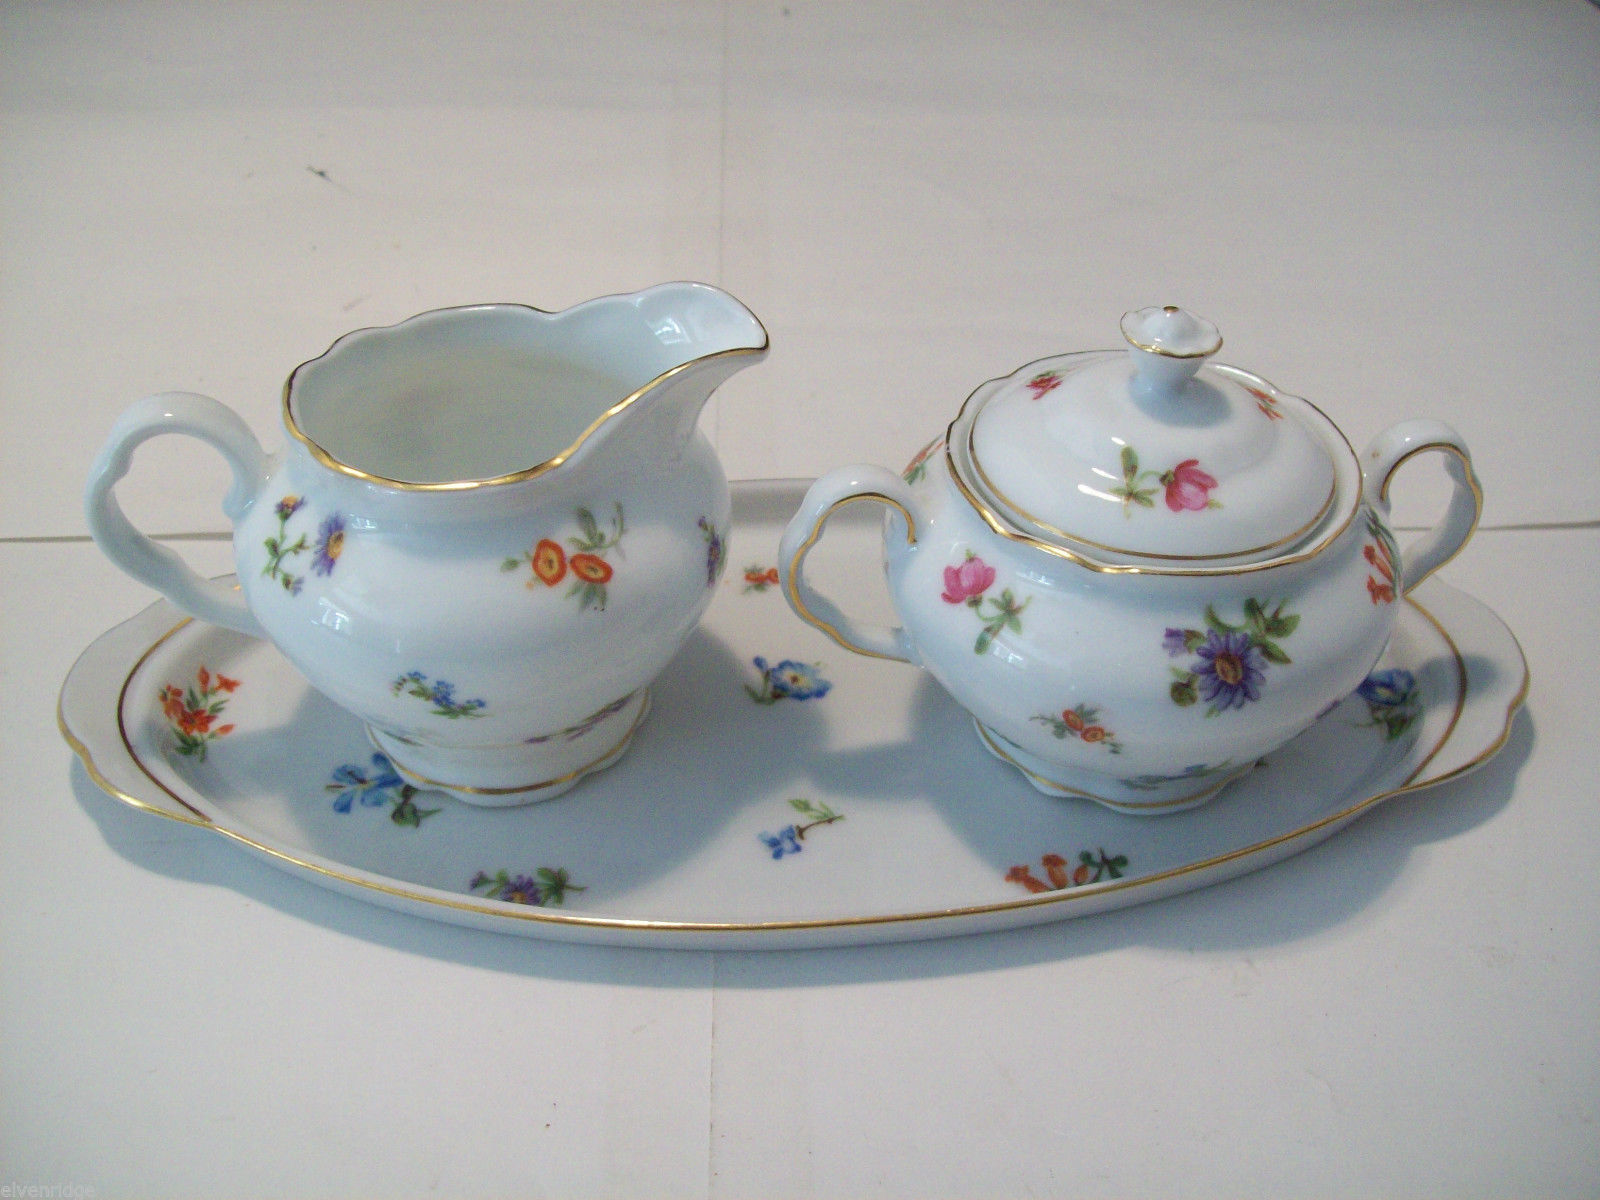 Czechoslovaki Victoria Cream and Sugar set with Tray Dainty